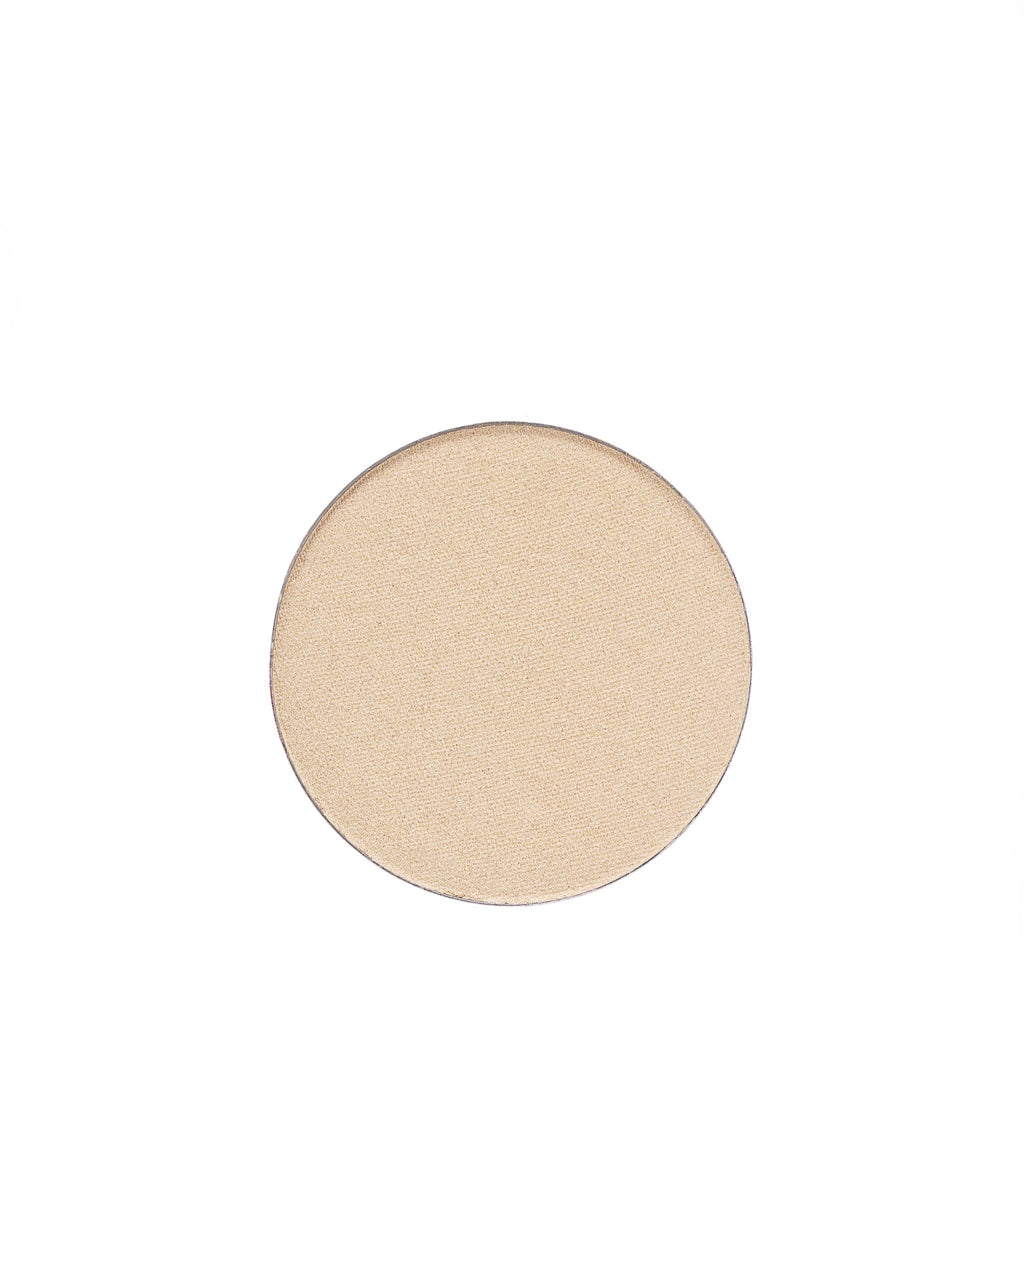 Butter Cream Shadow/Highlighter Magnetic Pan